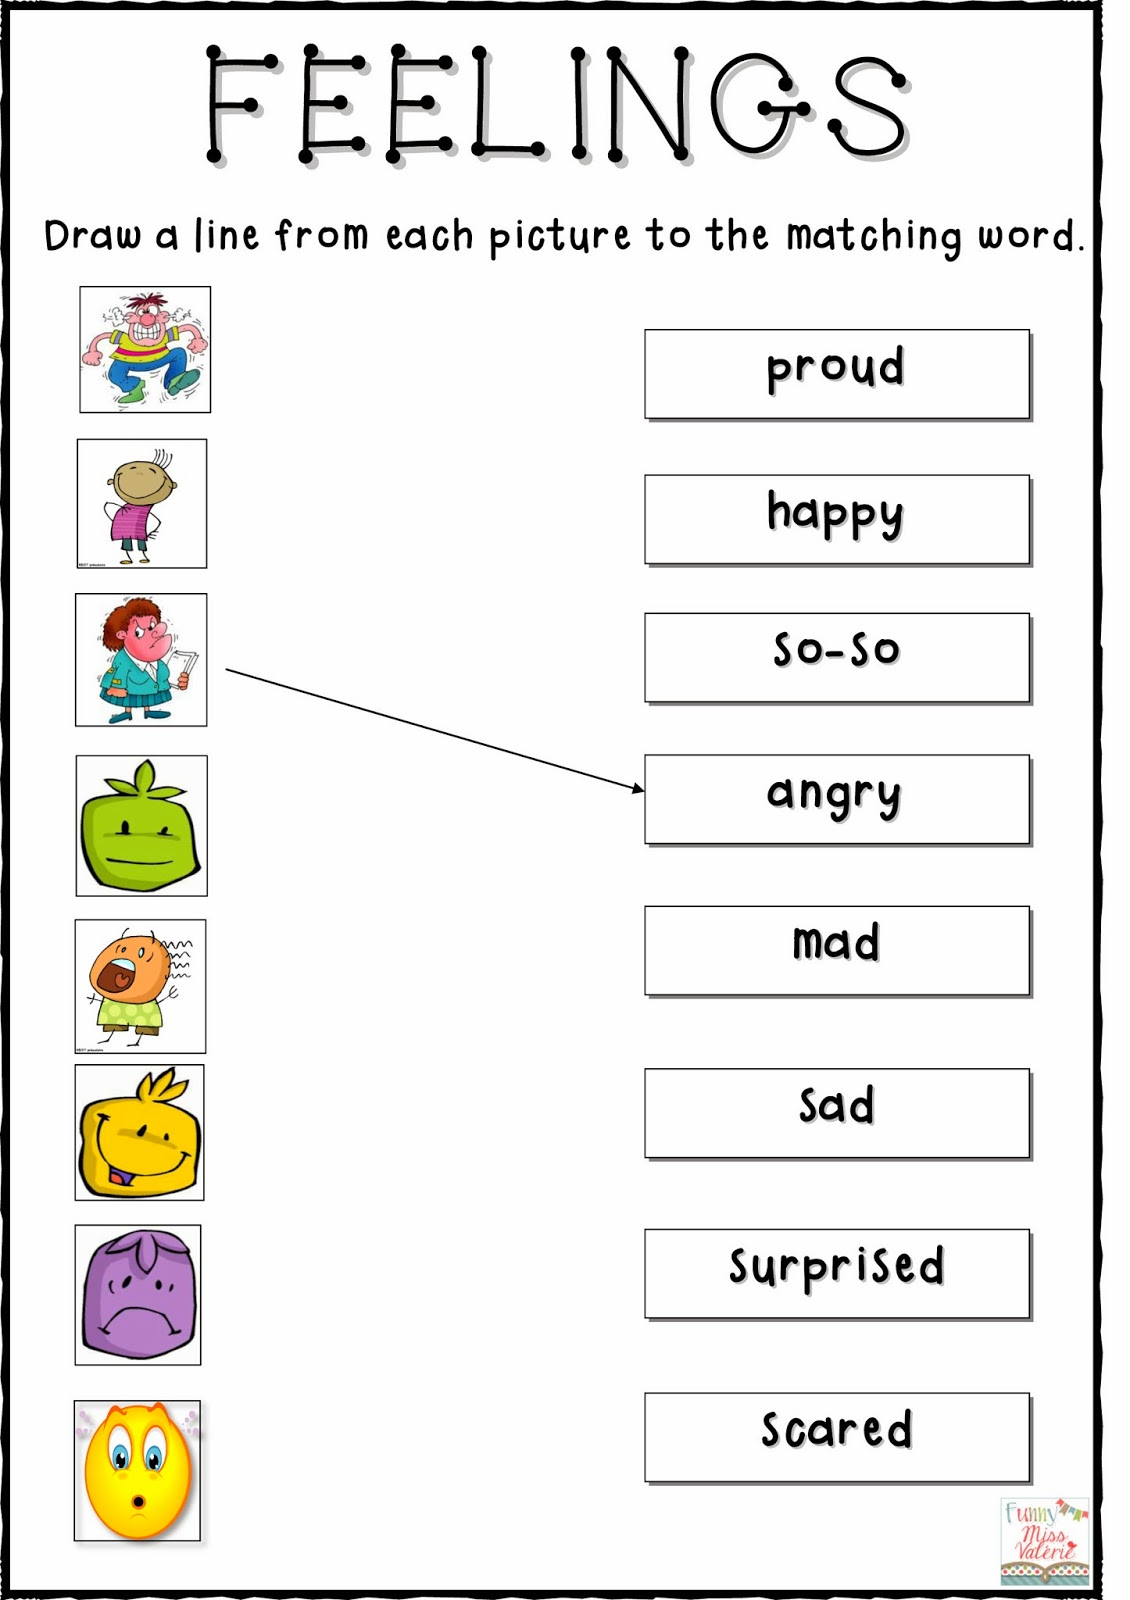 Candid image with feelings and emotions worksheets printable